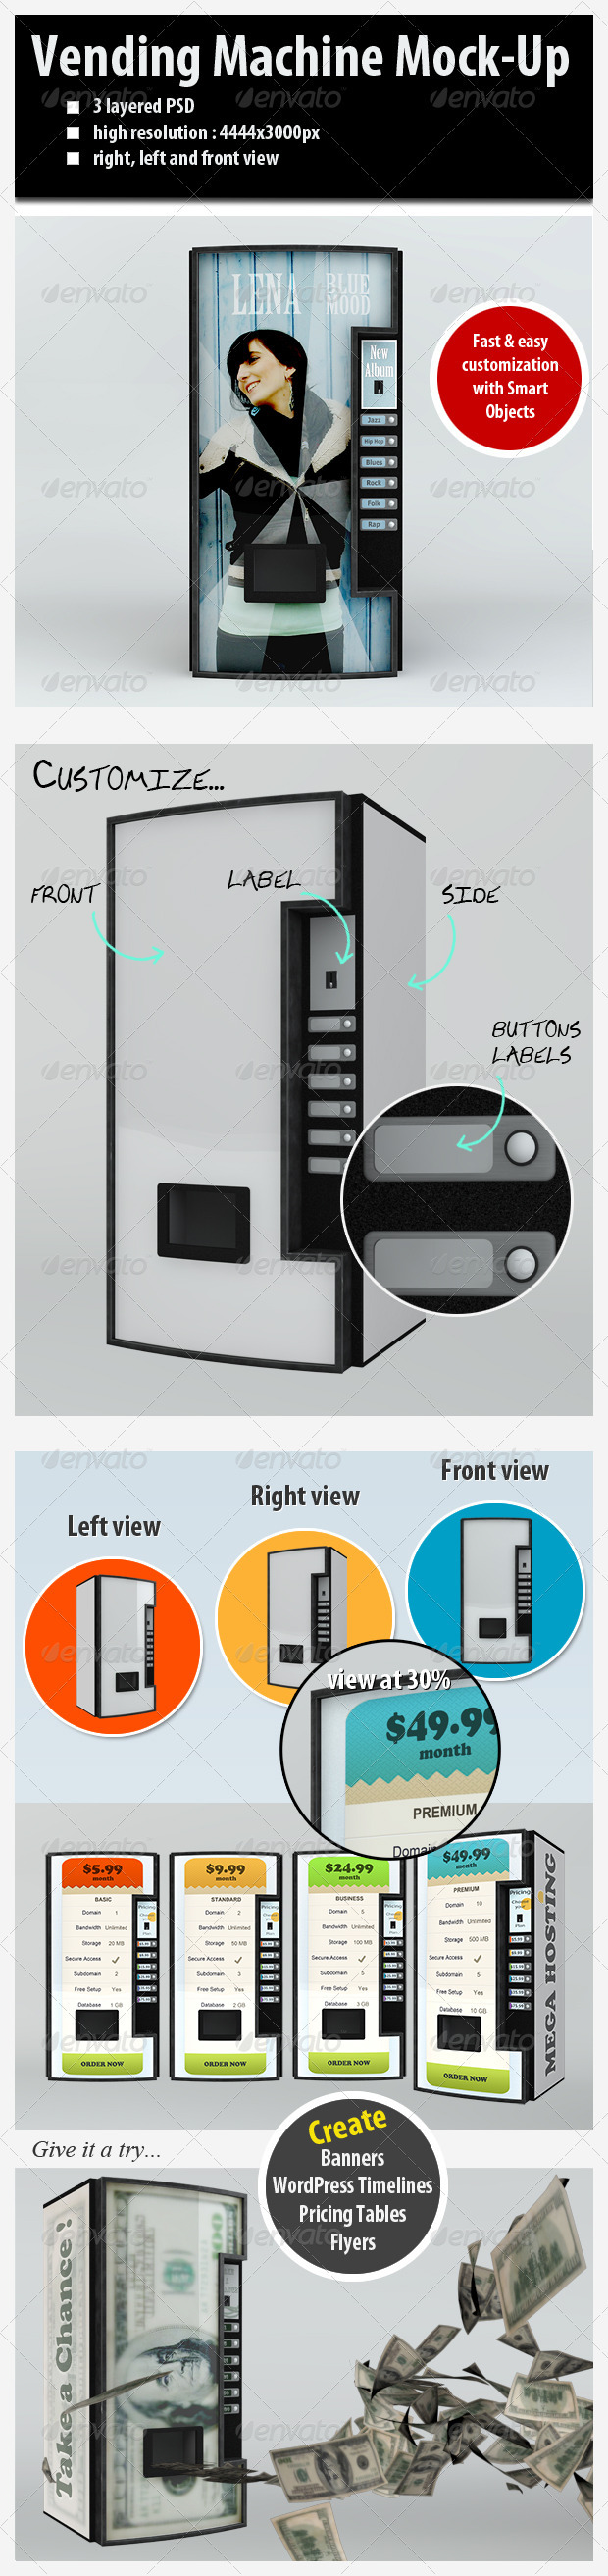 Customizable Vending Machine Mock-Up - Miscellaneous Product Mock-Ups